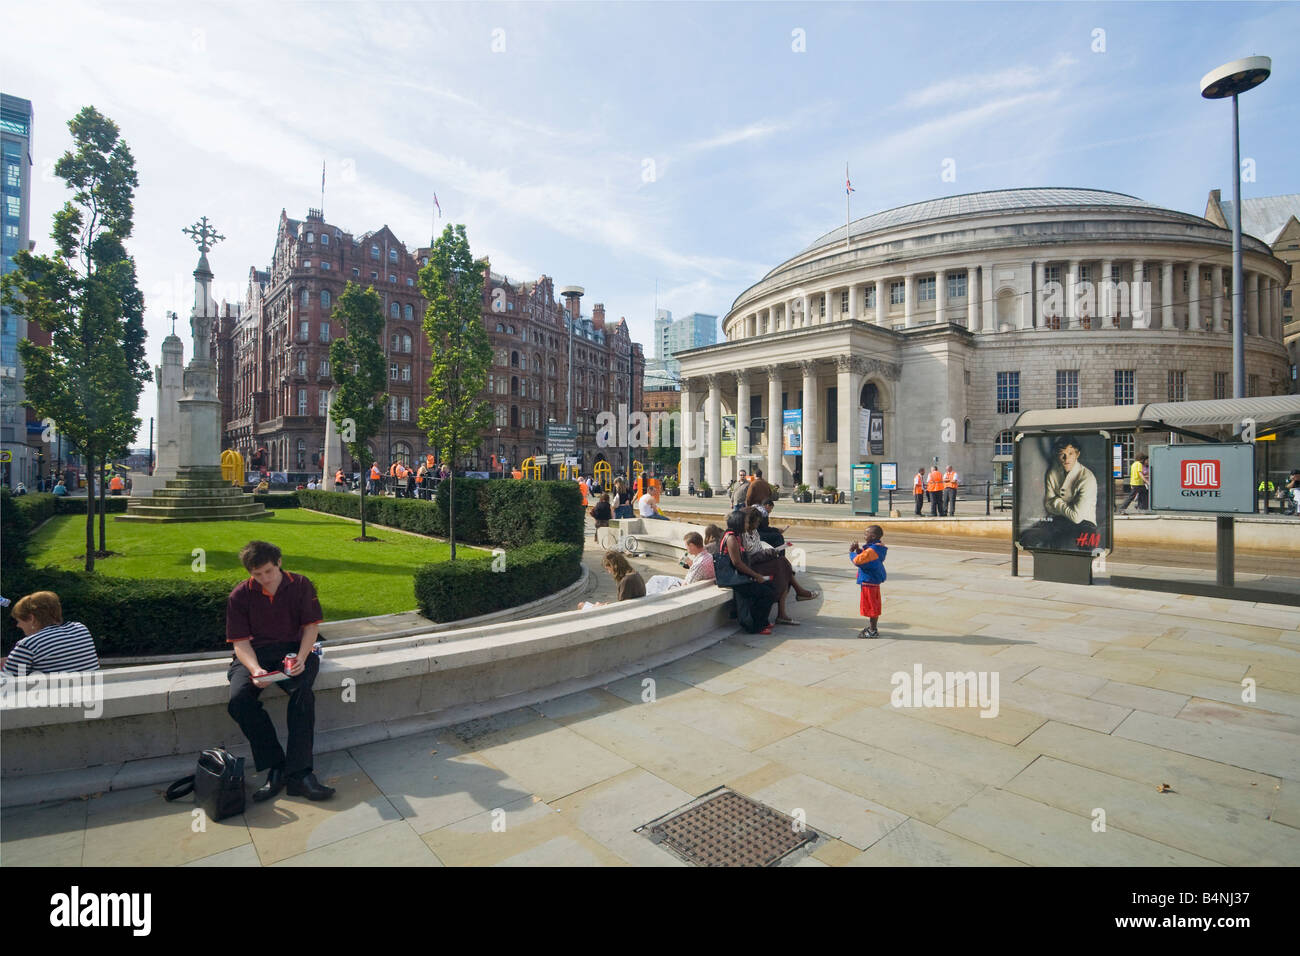 Central Library in St Peters Square Manchester city centre Lancashire England UK United Kingdom GB Great Britain - Stock Image